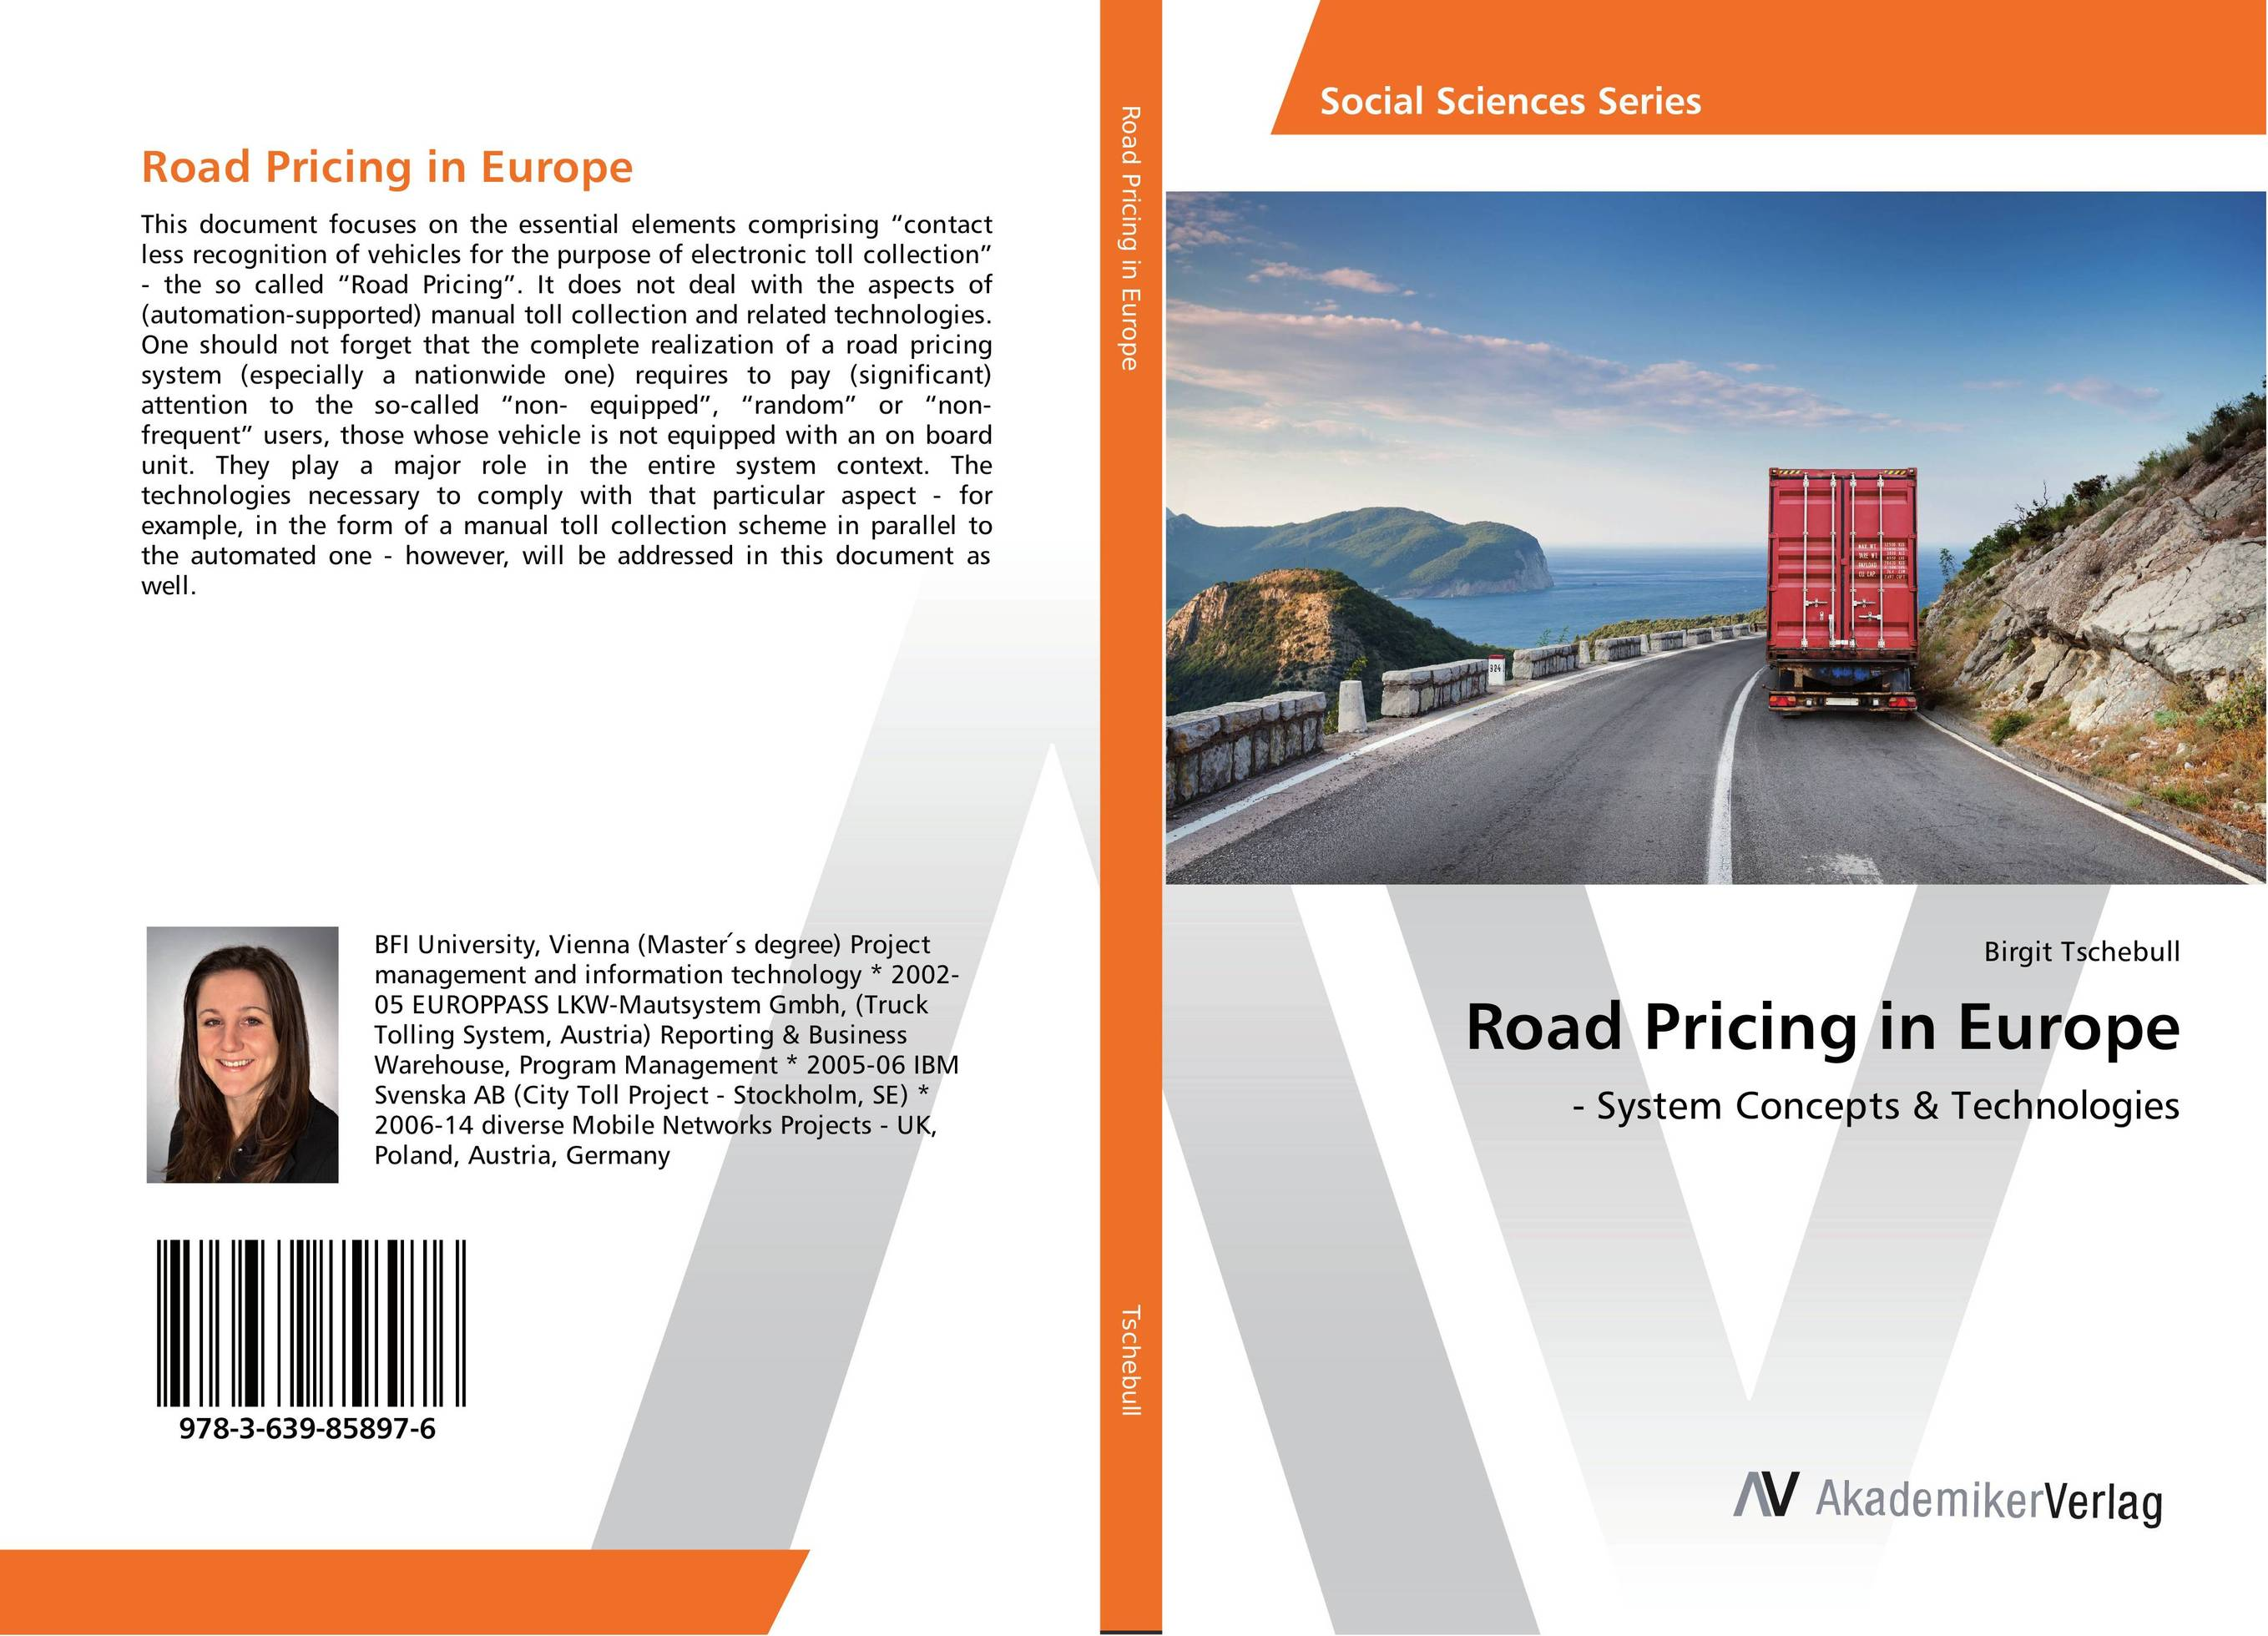 Road Pricing in Europe